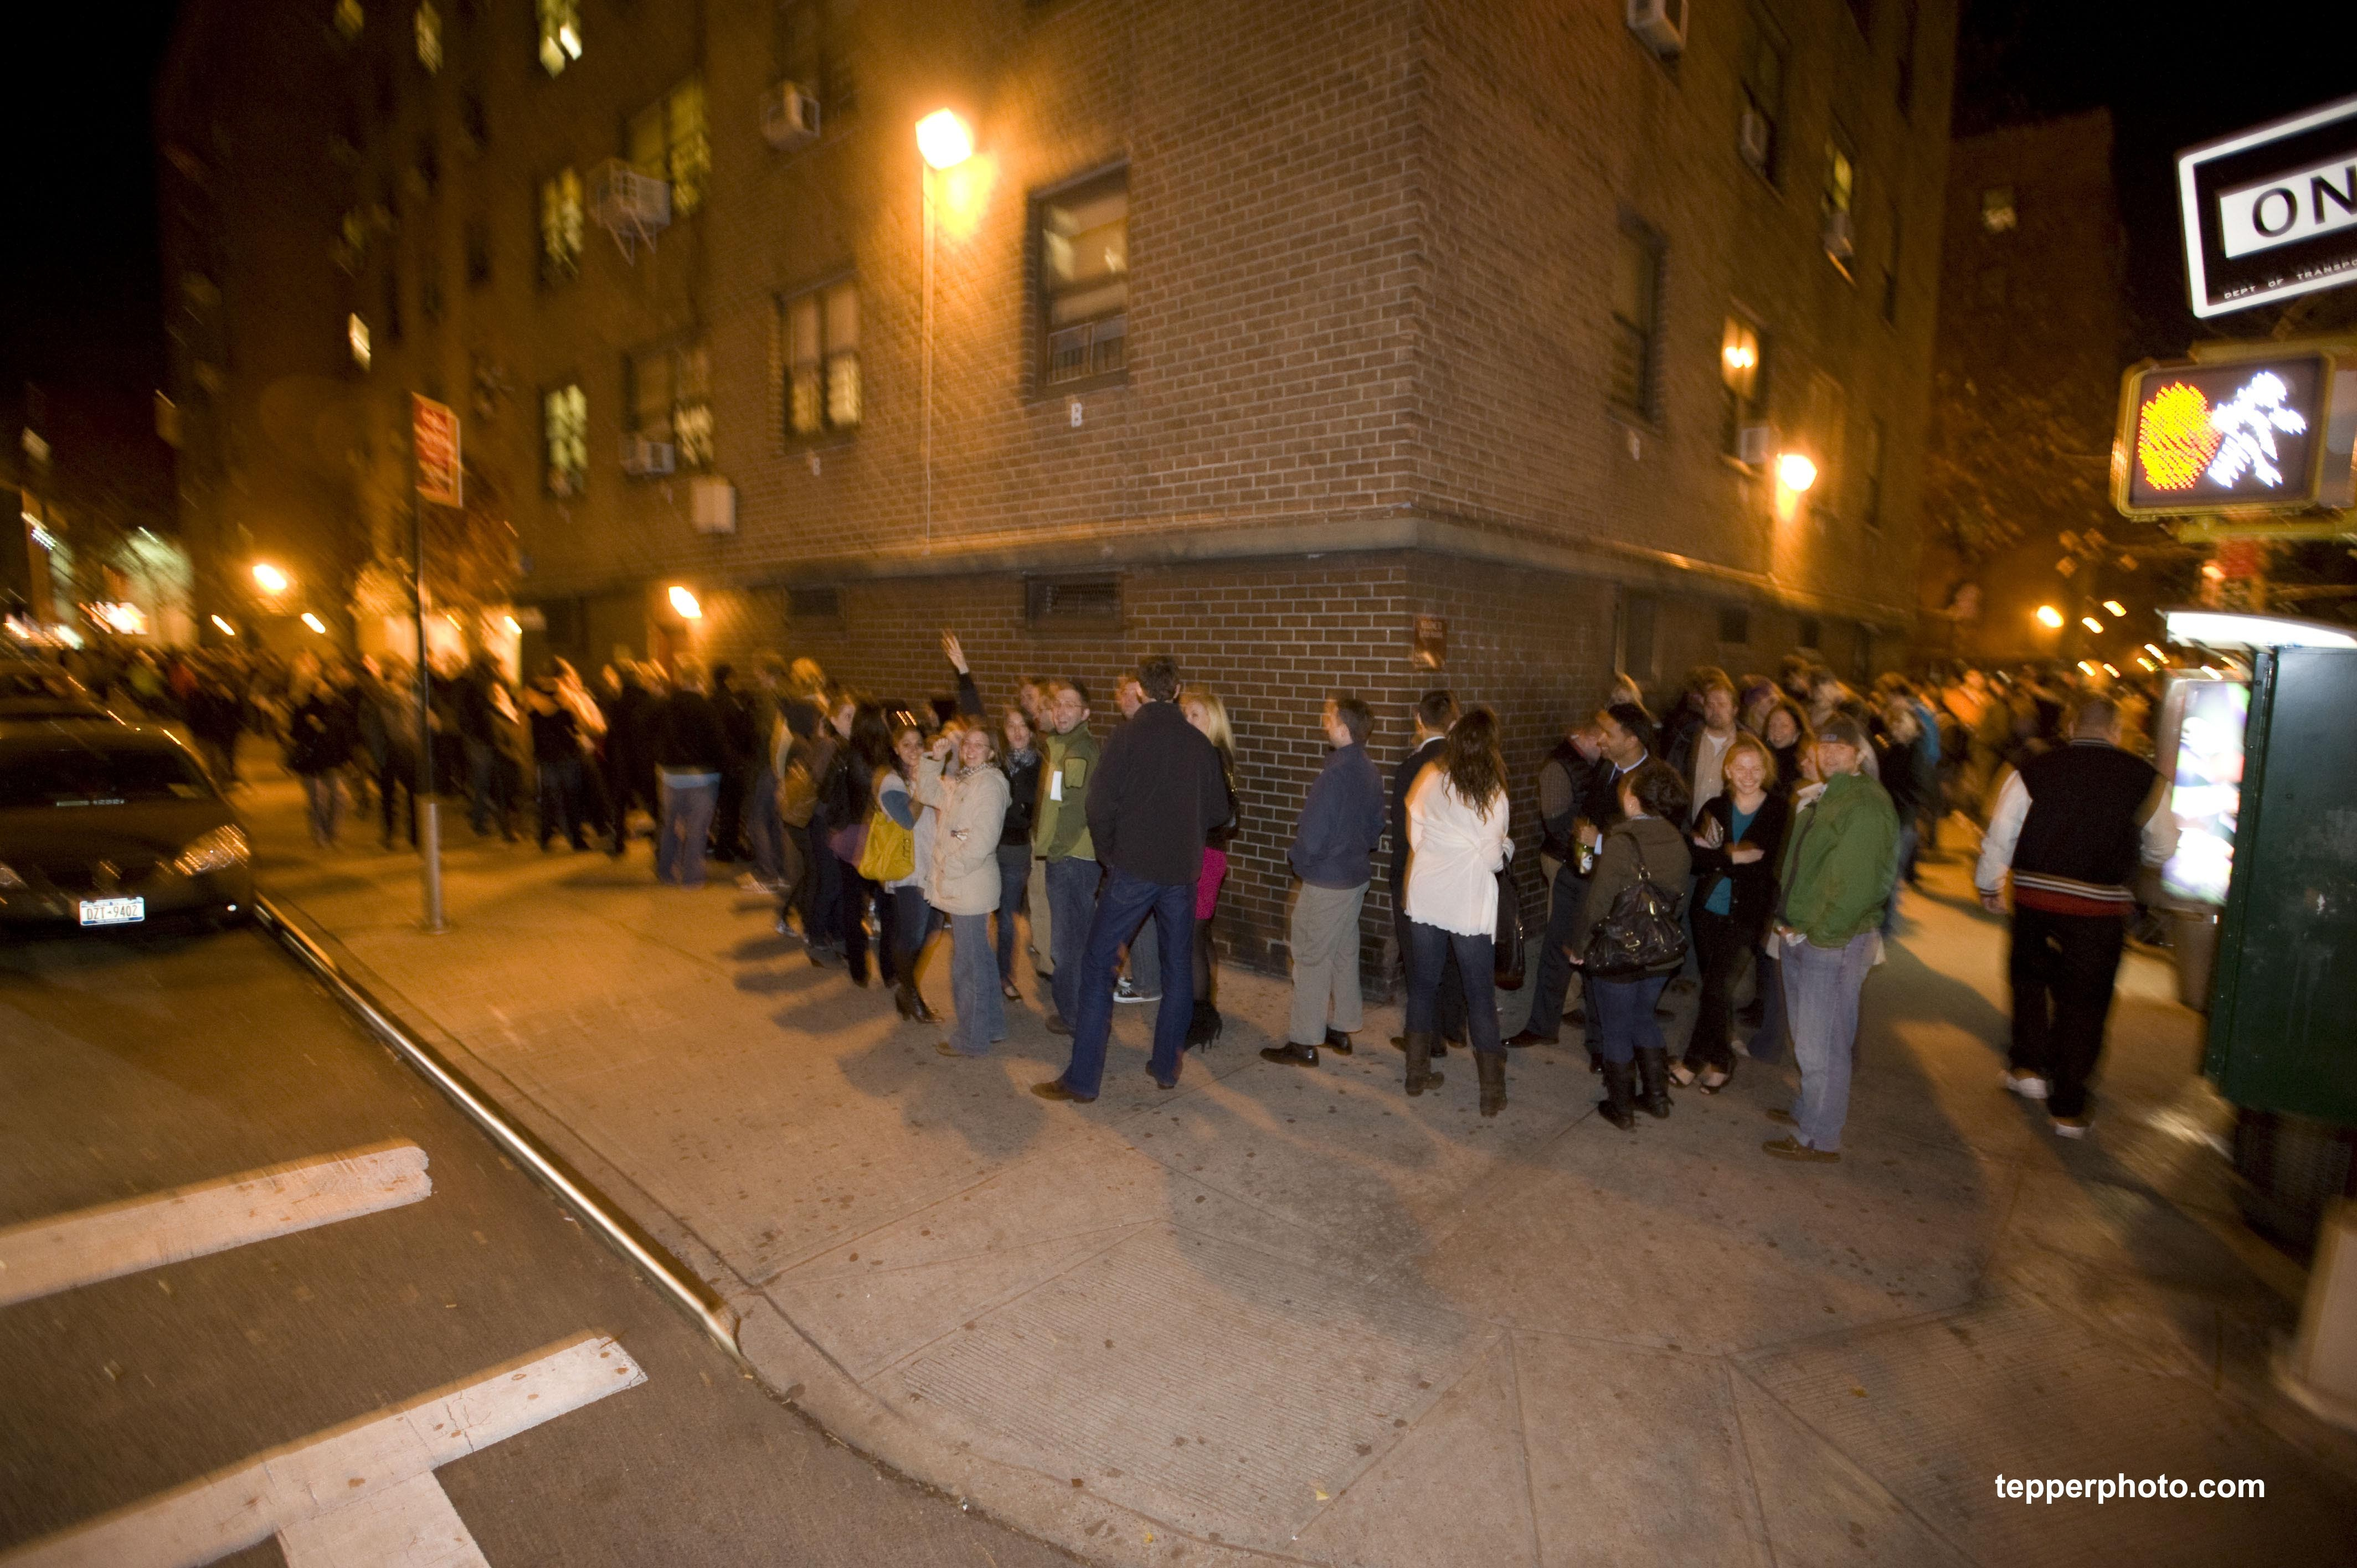 The line went for hundreds of feet down to the corner of 9th Ave!